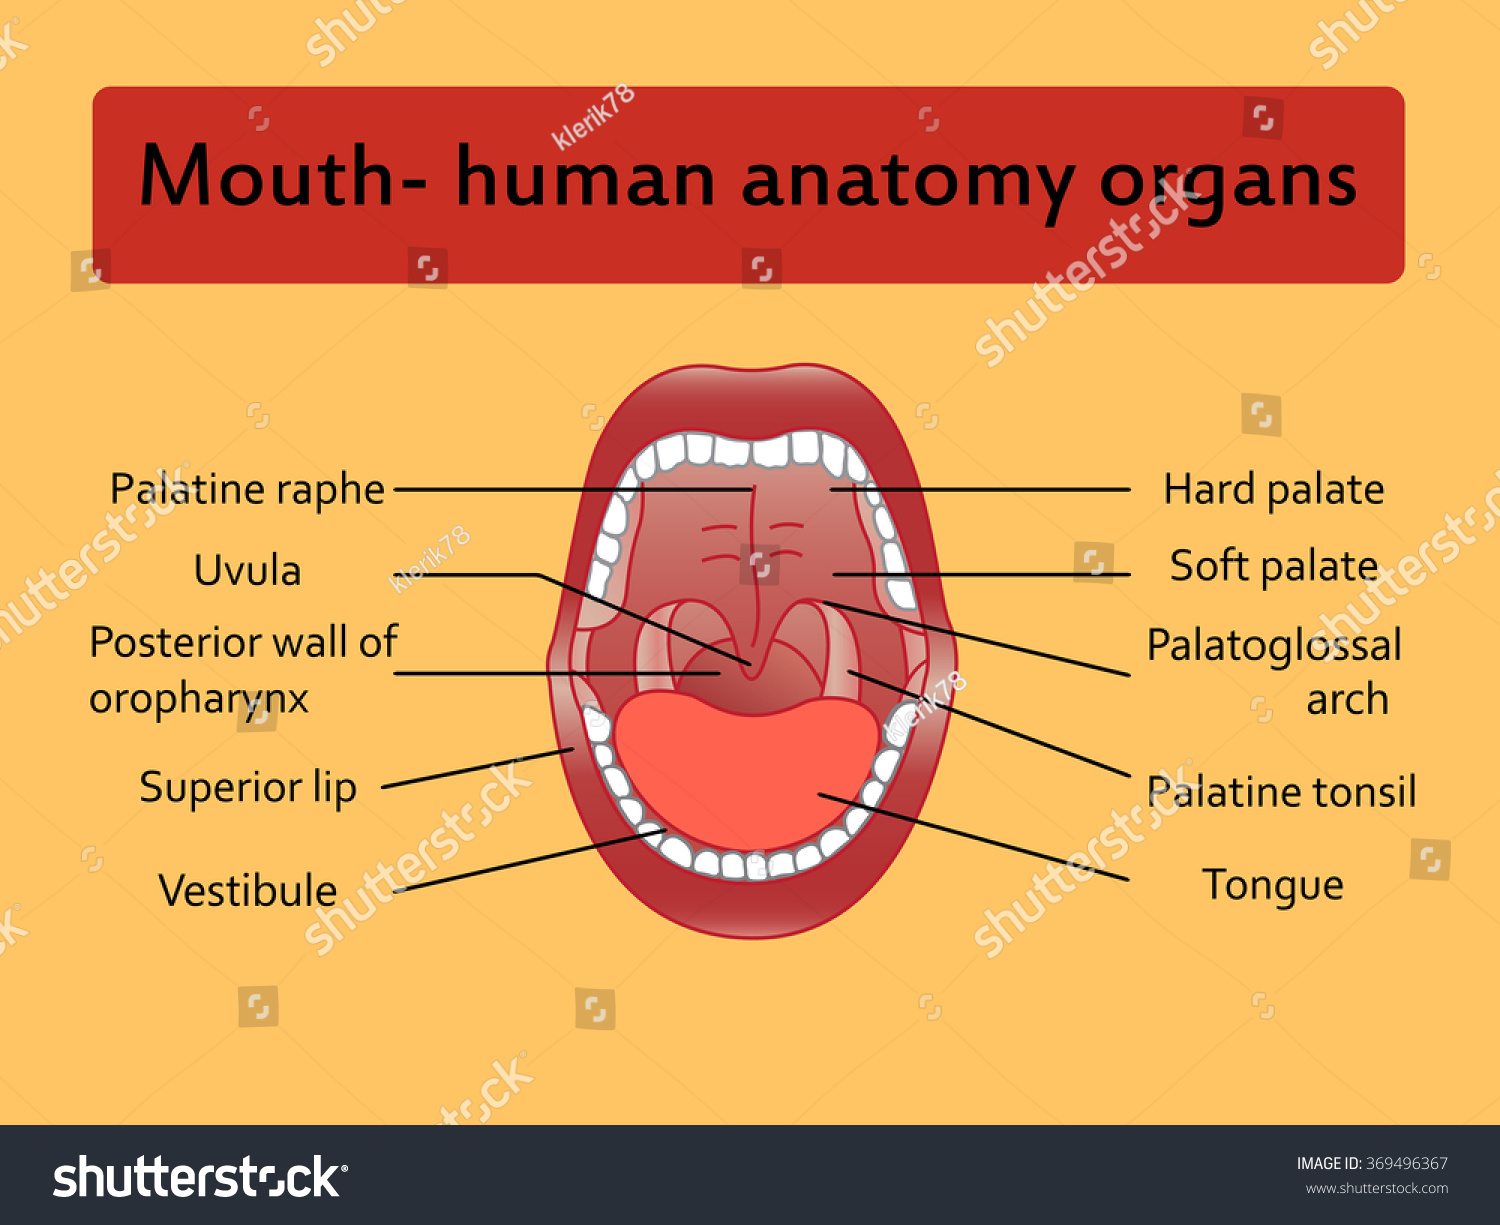 lip anatomy diagram pioneer deh p4400 wiring parts of human mouth mom has tits